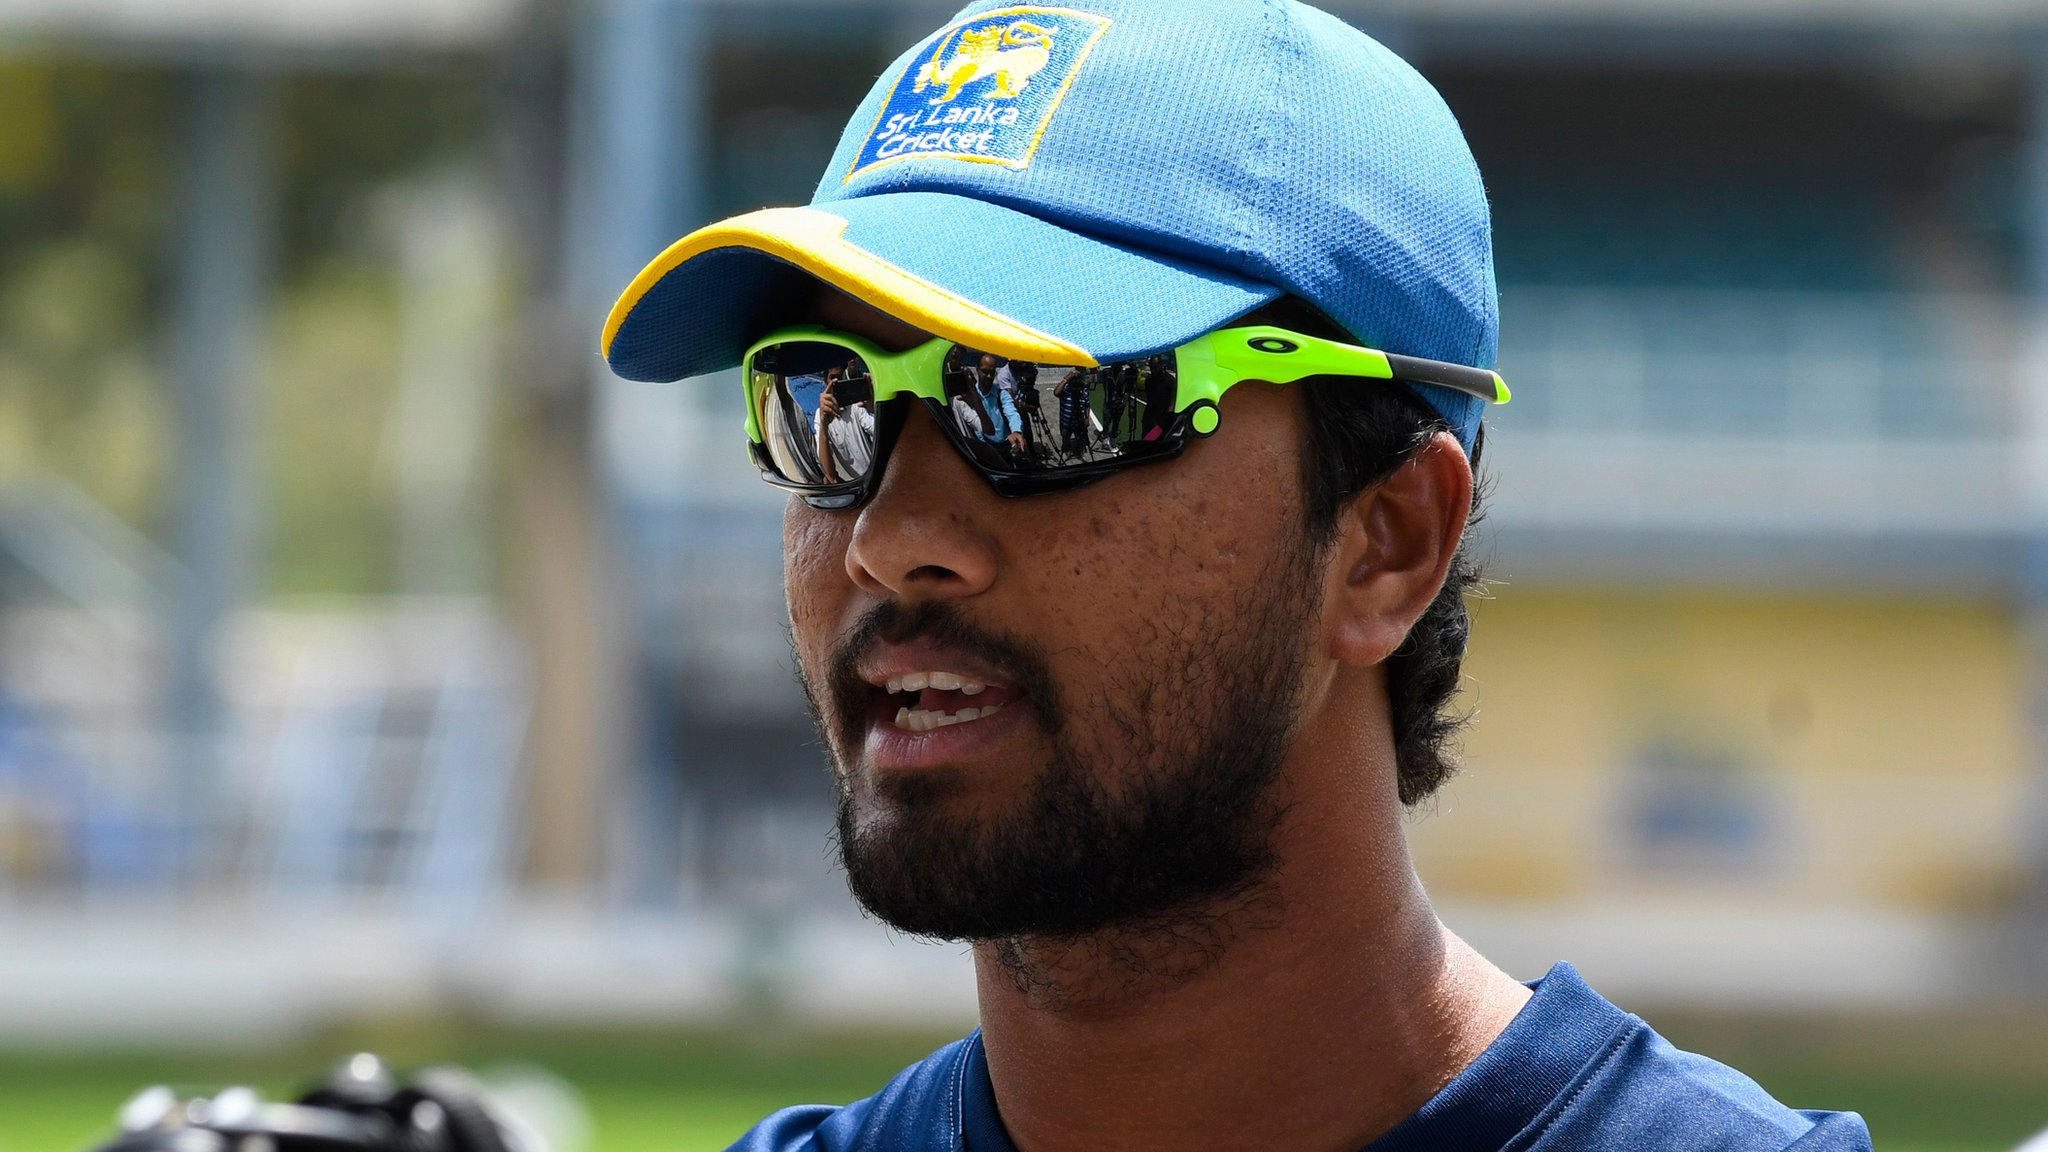 Sri Lanka captain Chandimal banned for ball-tampering